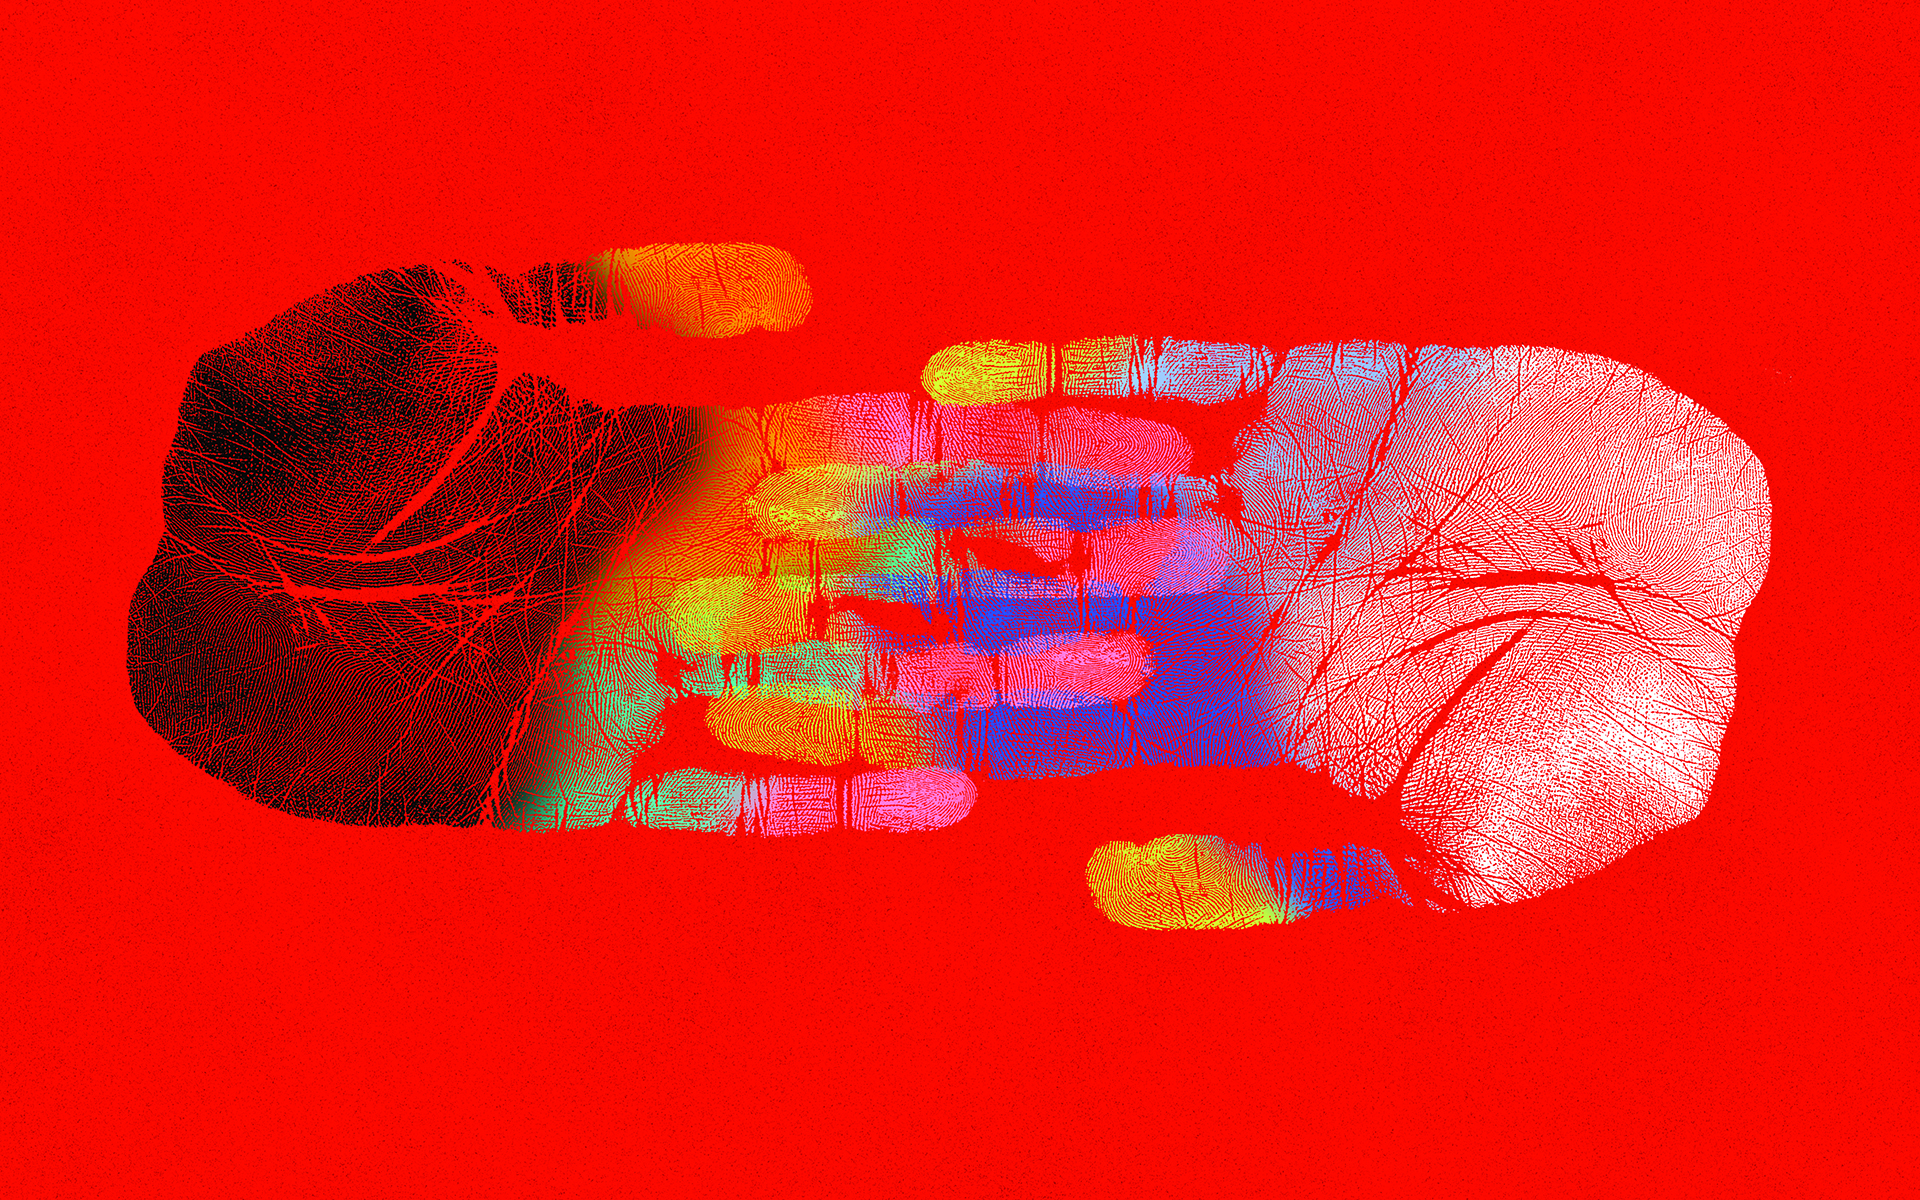 We're All Biased. Here's How Meditation May Help—Painting of two hands painted in many colors coming together from left and right with their fingers interlocking in the middle over a red background.